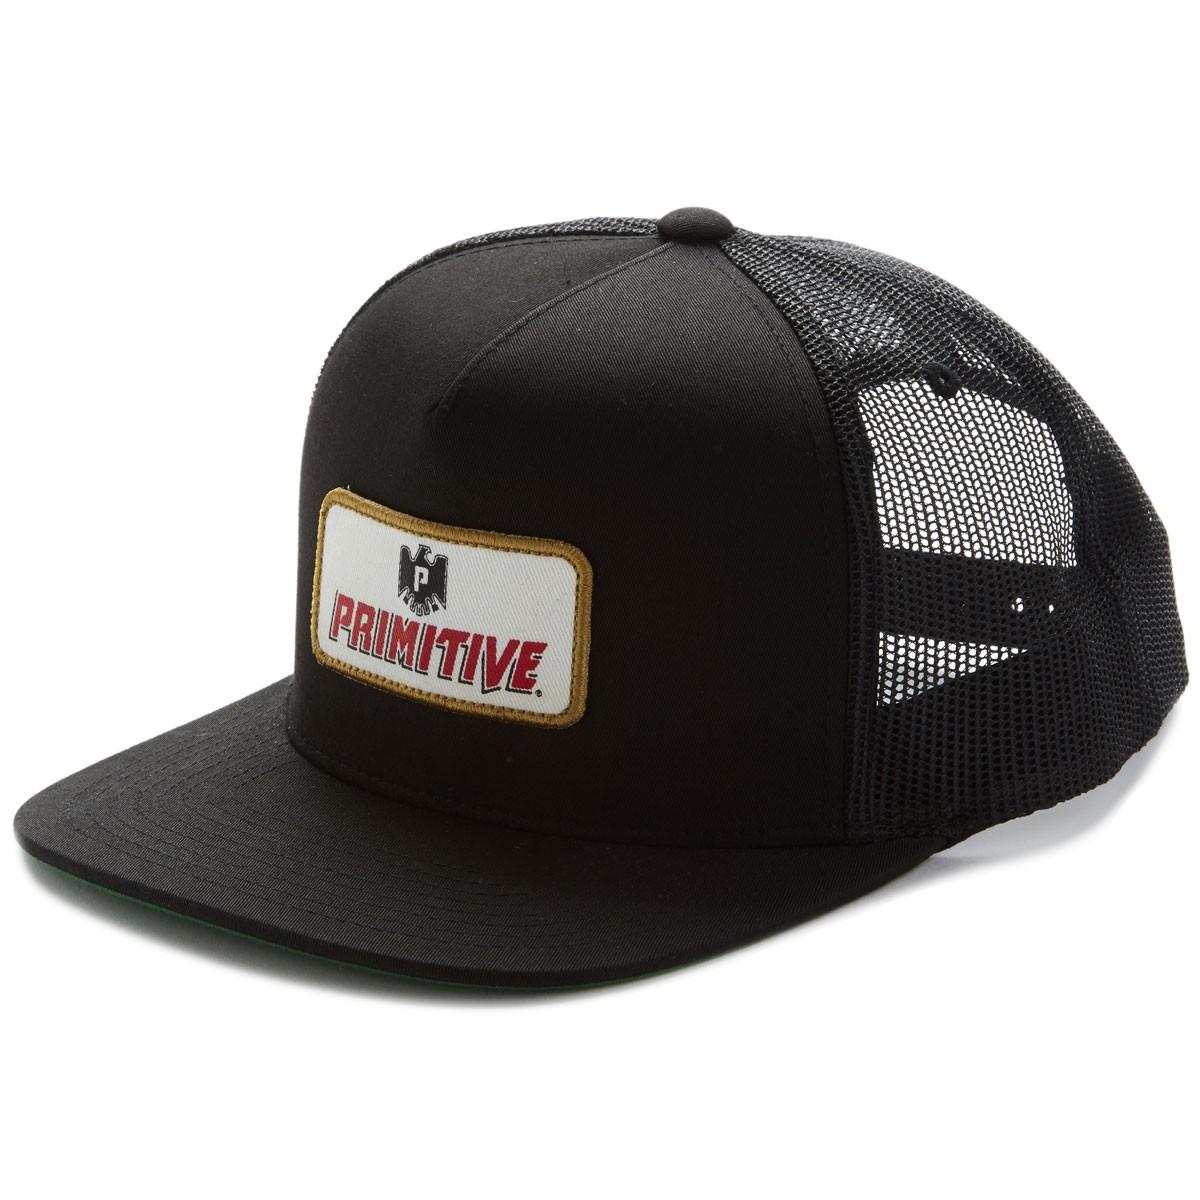 Primitive Cerveza Trucker Hat - Black